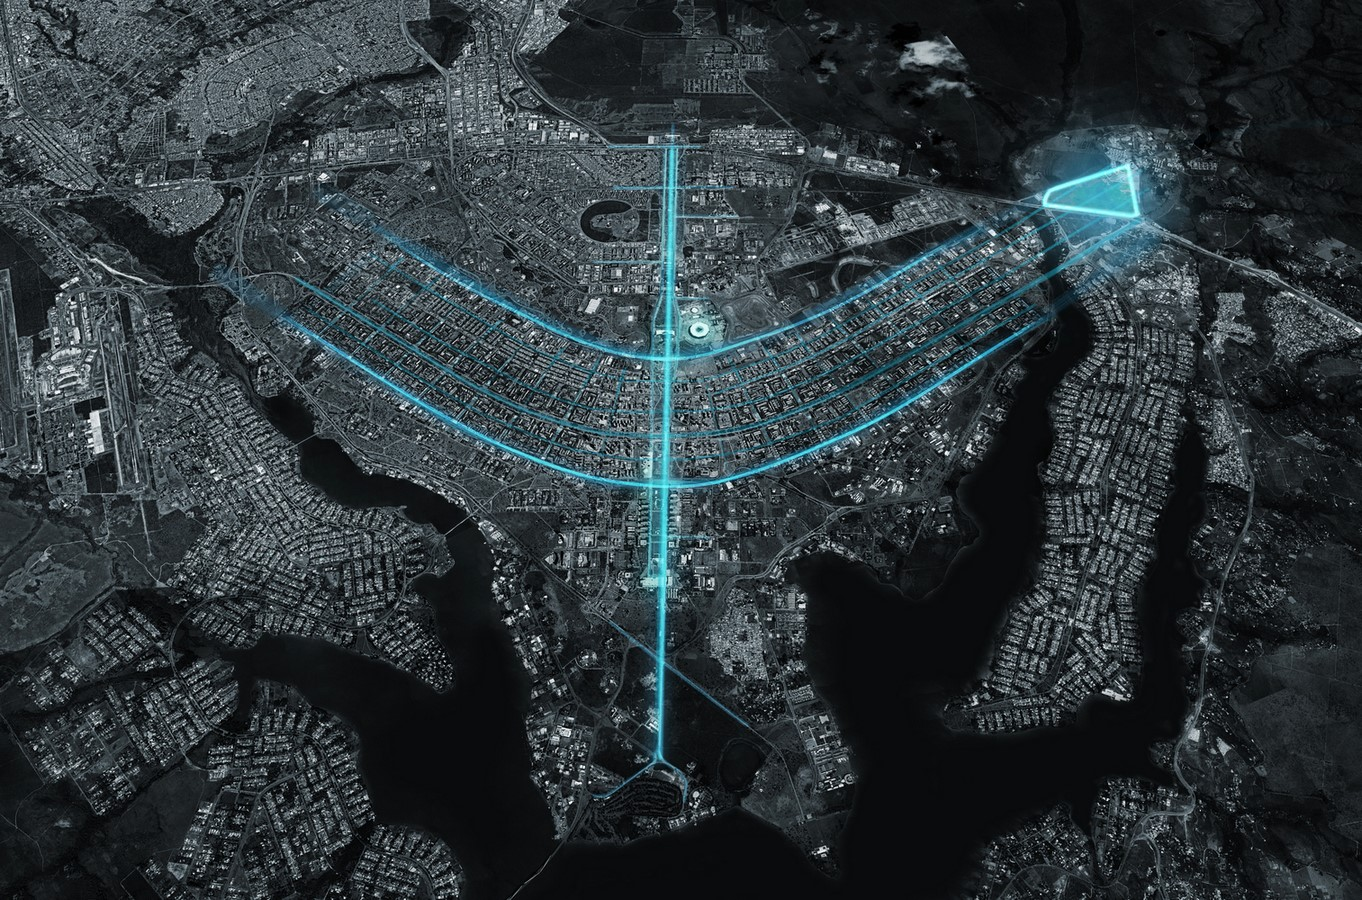 'BIOTIC' technology and innovation district for Brasilia revealed by Carlo Ratti - Sheet3